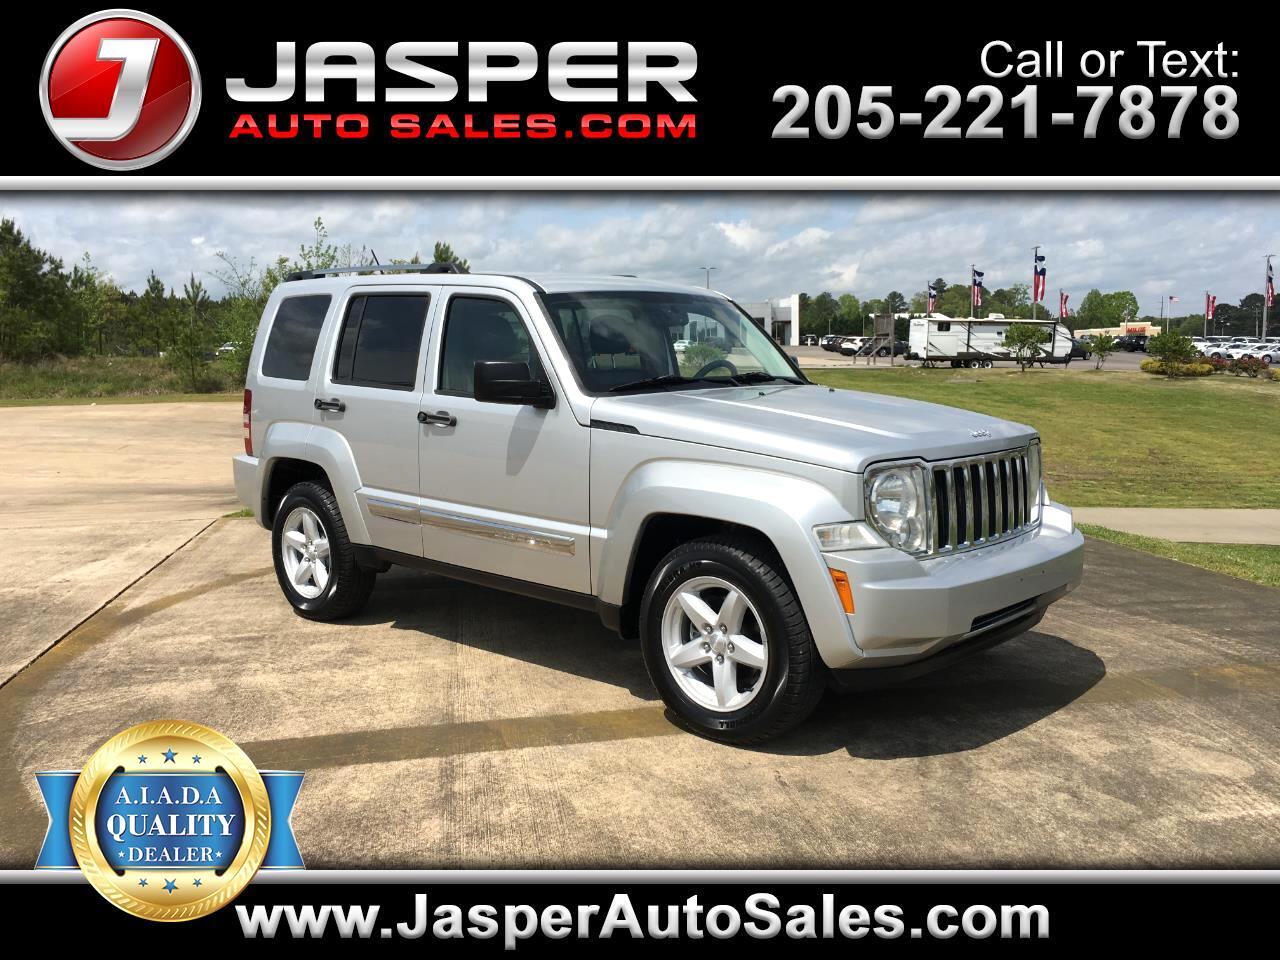 2012 Jeep Liberty RWD 4dr Limited